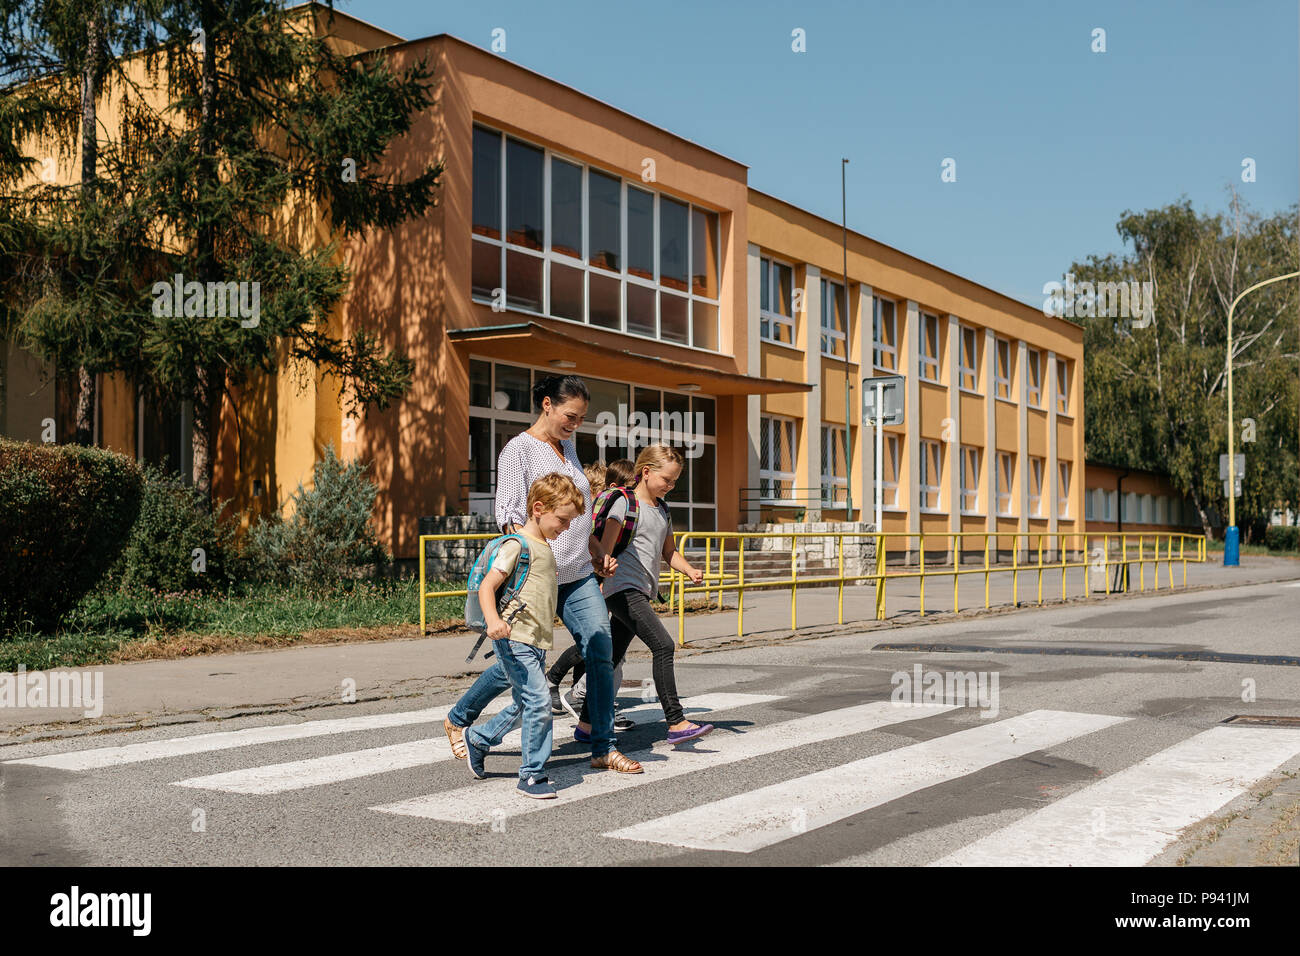 Road safety - children crossing a road accompanied by an adult. Mother picking her children up from school. - Stock Image